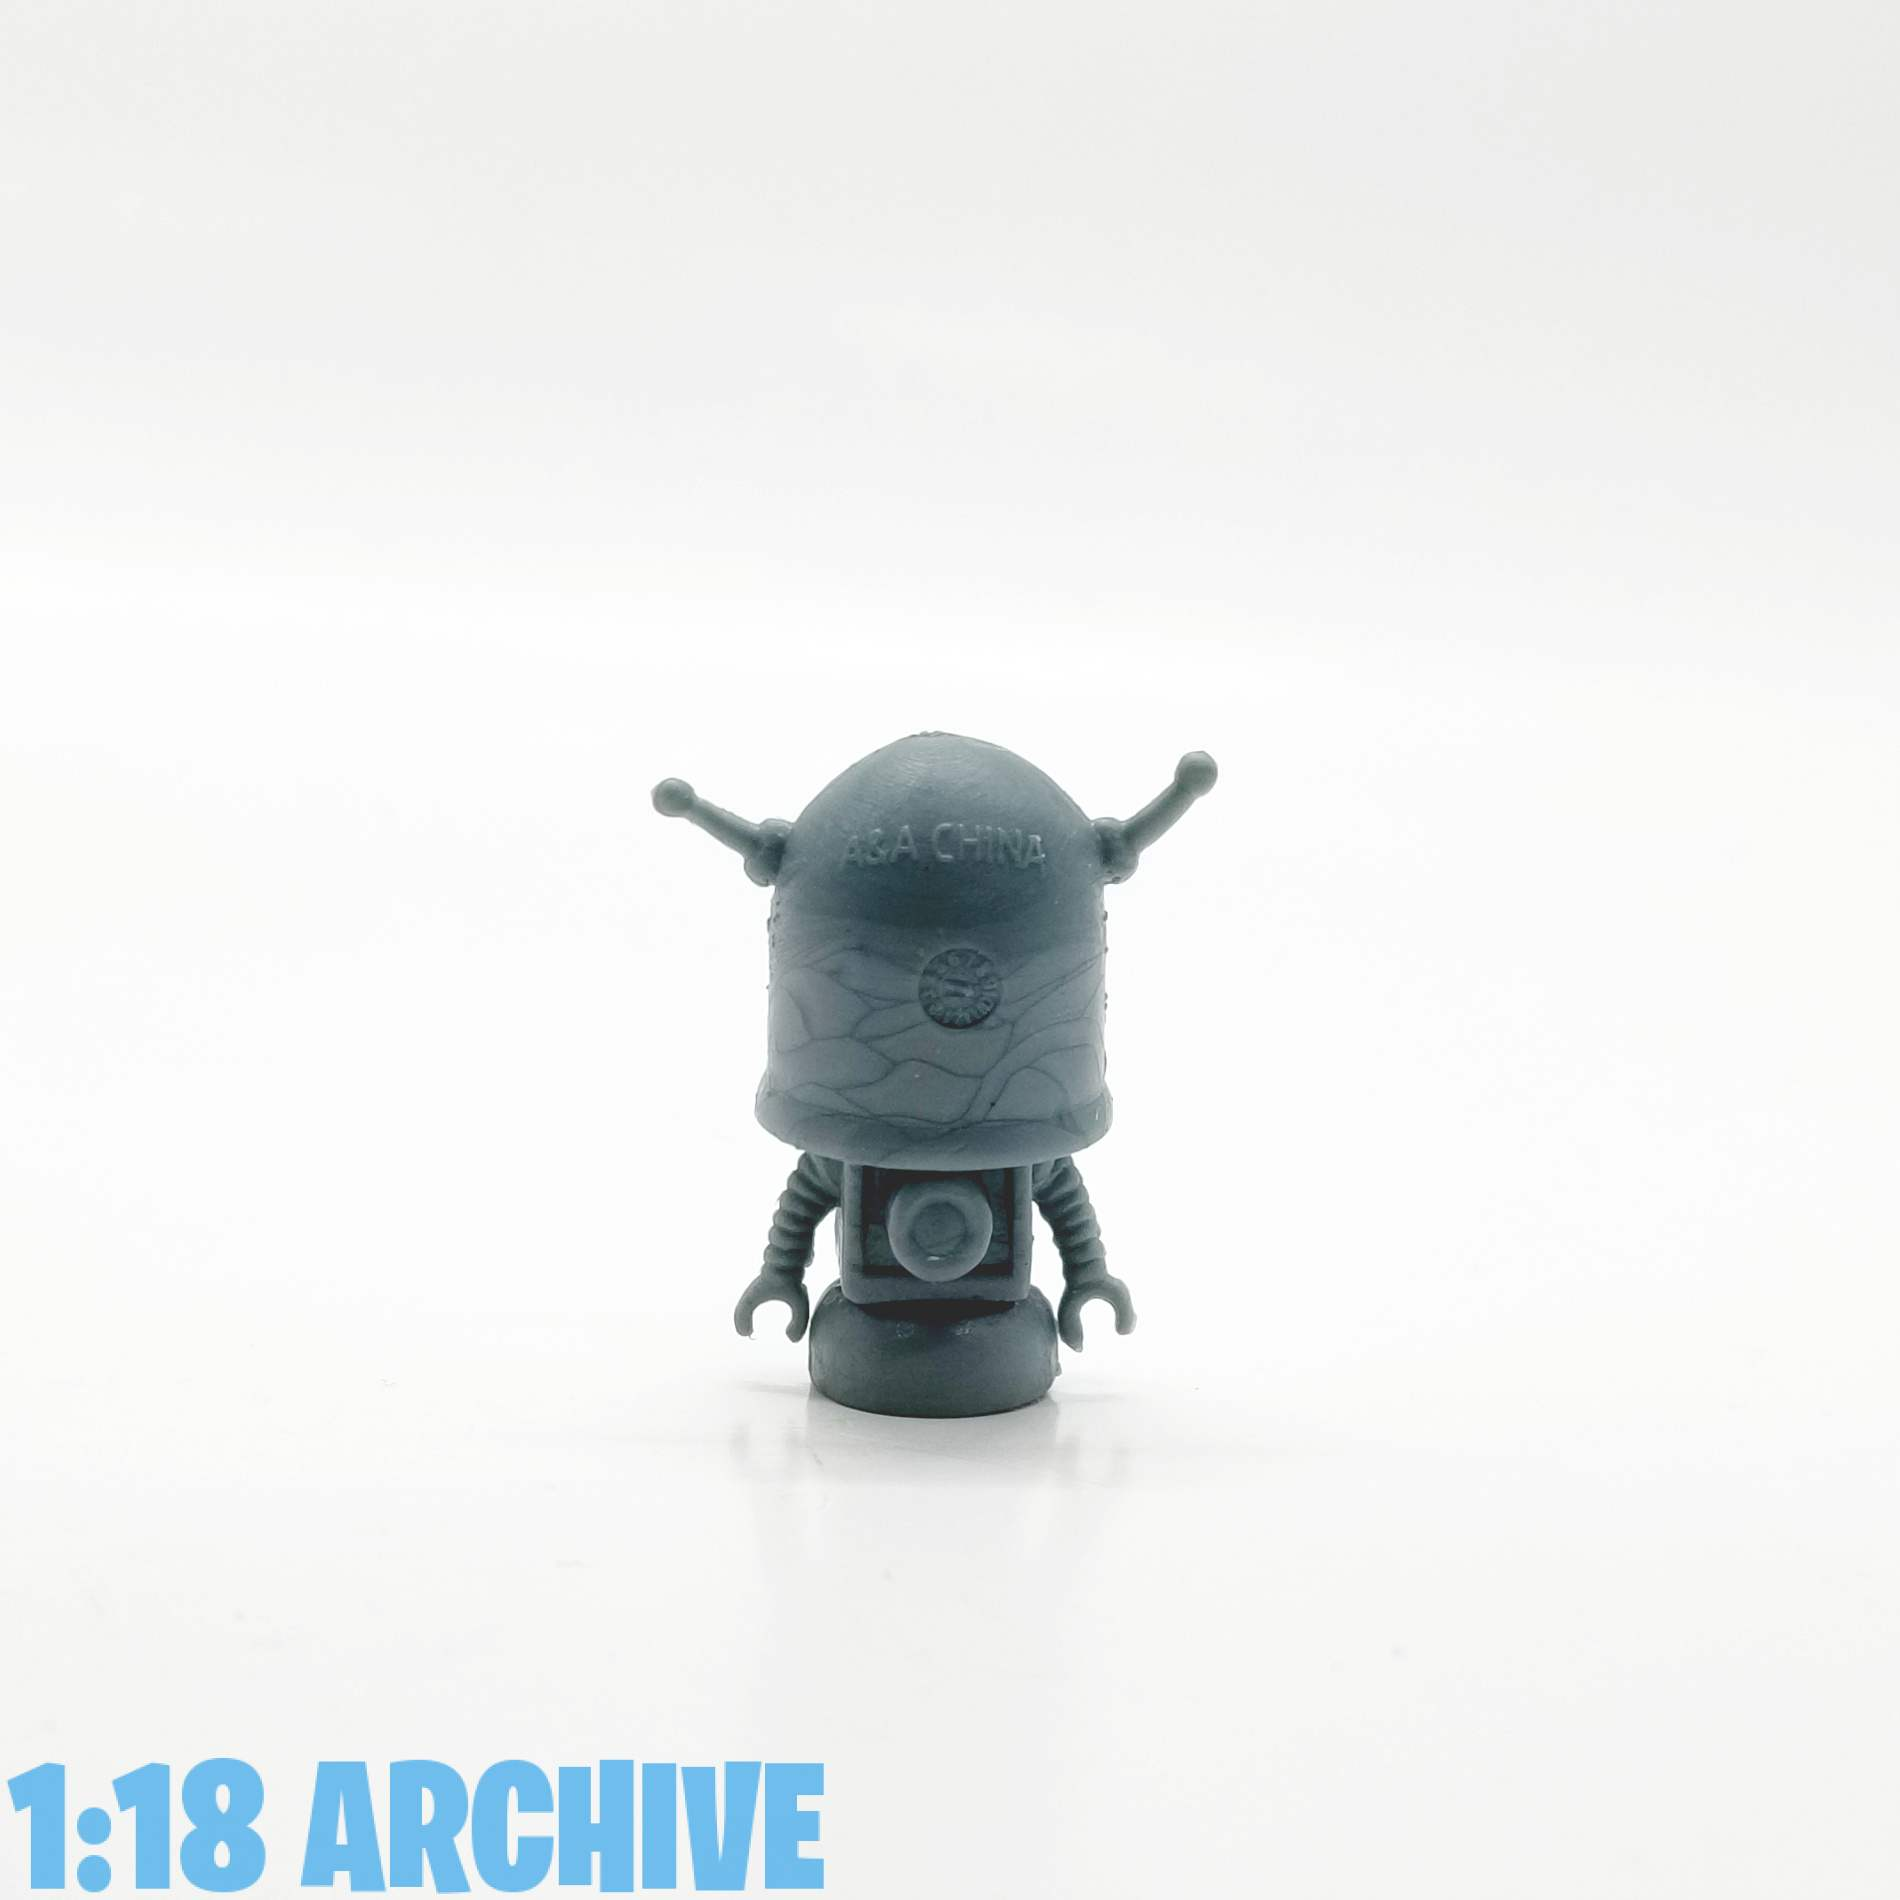 118_Action_Figure_Archive_Droid_of_the_Day_Reviews_Checklist_Guide_Gumball_Stitchez_Robot